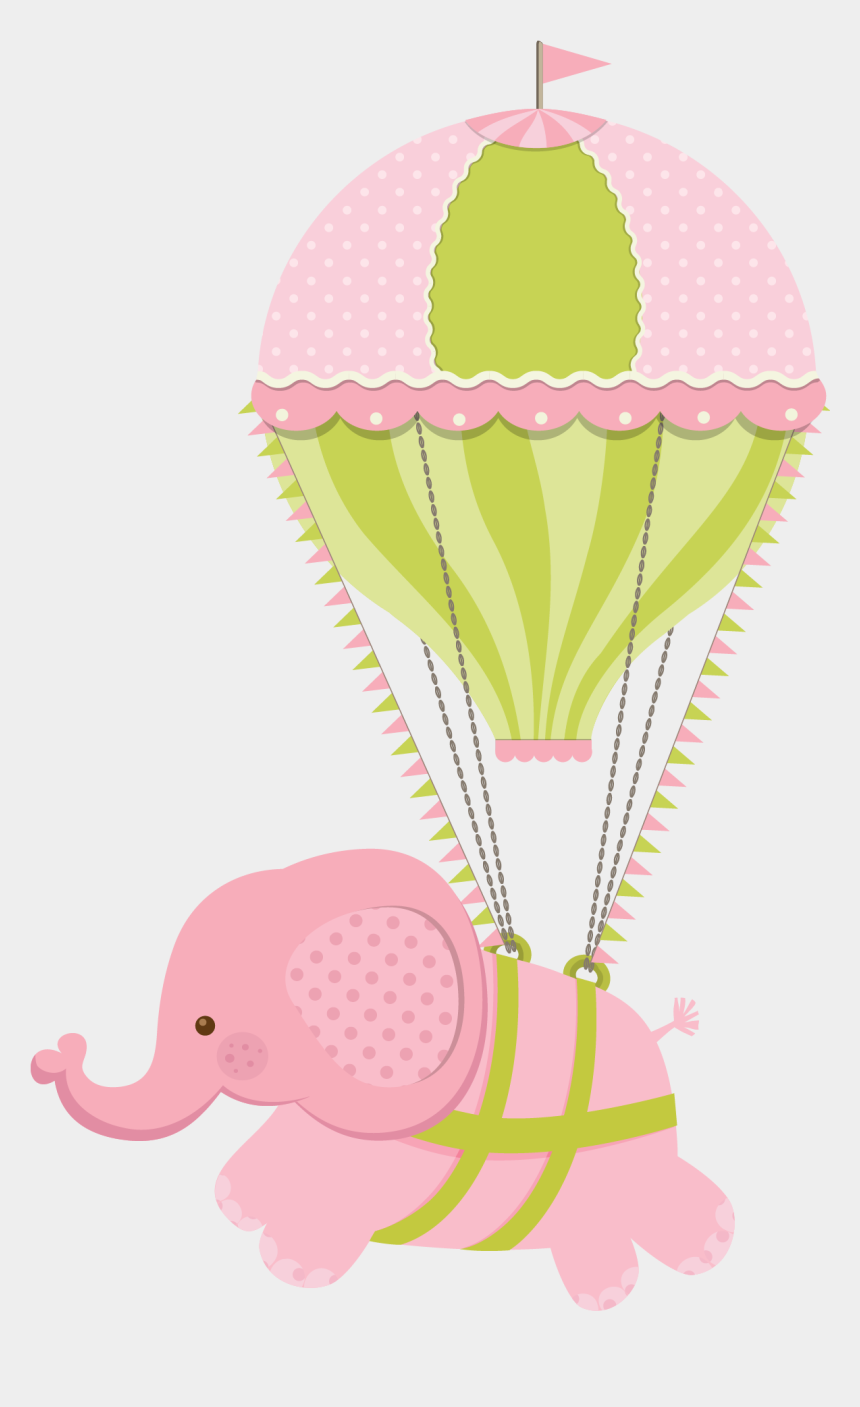 toy cliparts, Cartoons - Elephant Toy Cliparts - Baby Shower Elephant Pink Png